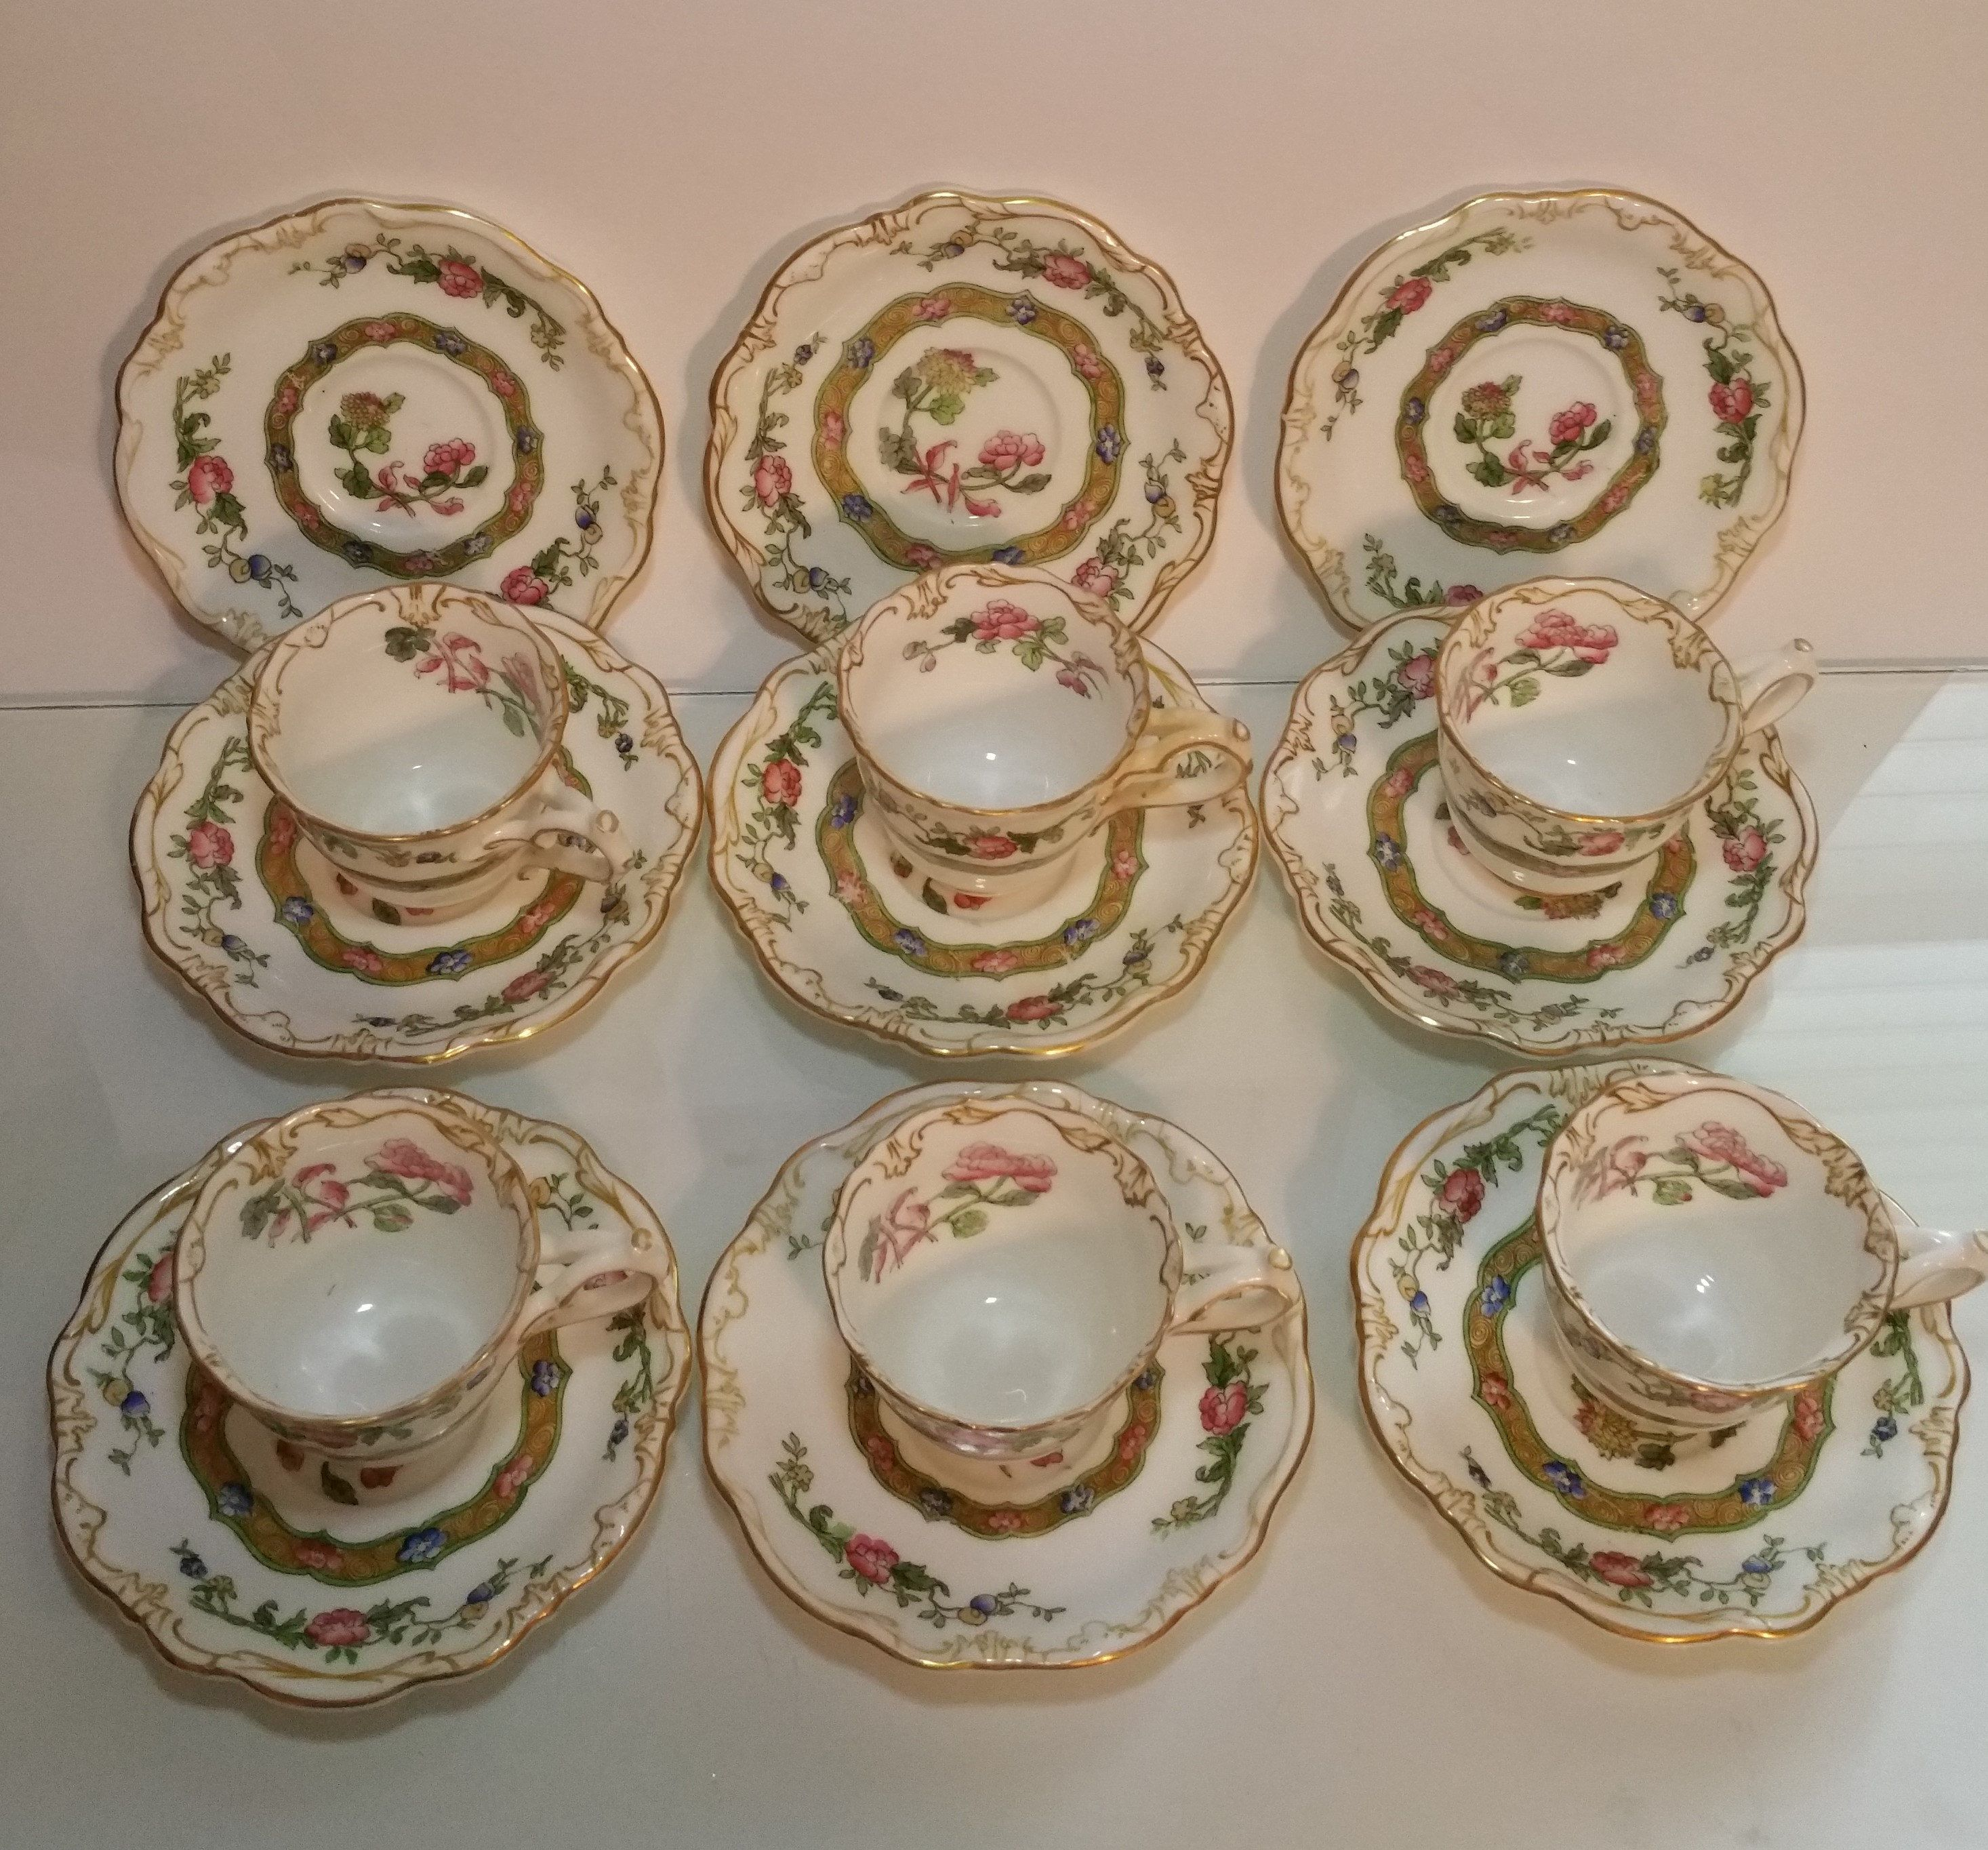 Reduced Antique Crescentware 1890 S George Jones Sons Etsy George Jones Demitasse Cups Cup And Saucer